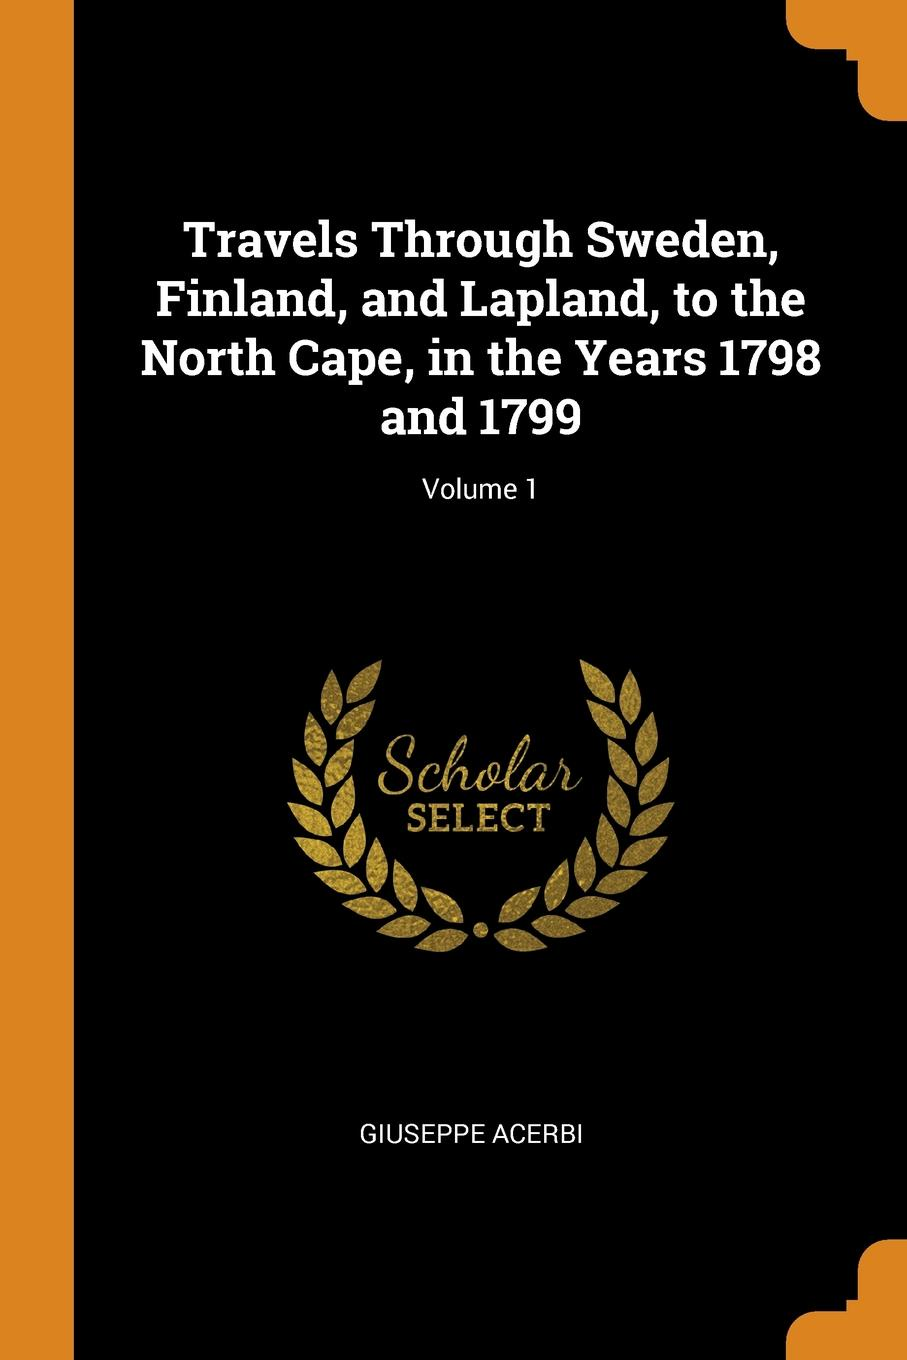 Giuseppe Acerbi Travels Through Sweden, Finland, and Lapland, to the North Cape, in the Years 1798 and 1799; Volume 1 joseph acerbi travels through sweden finland and lapland to the north cape vol 1